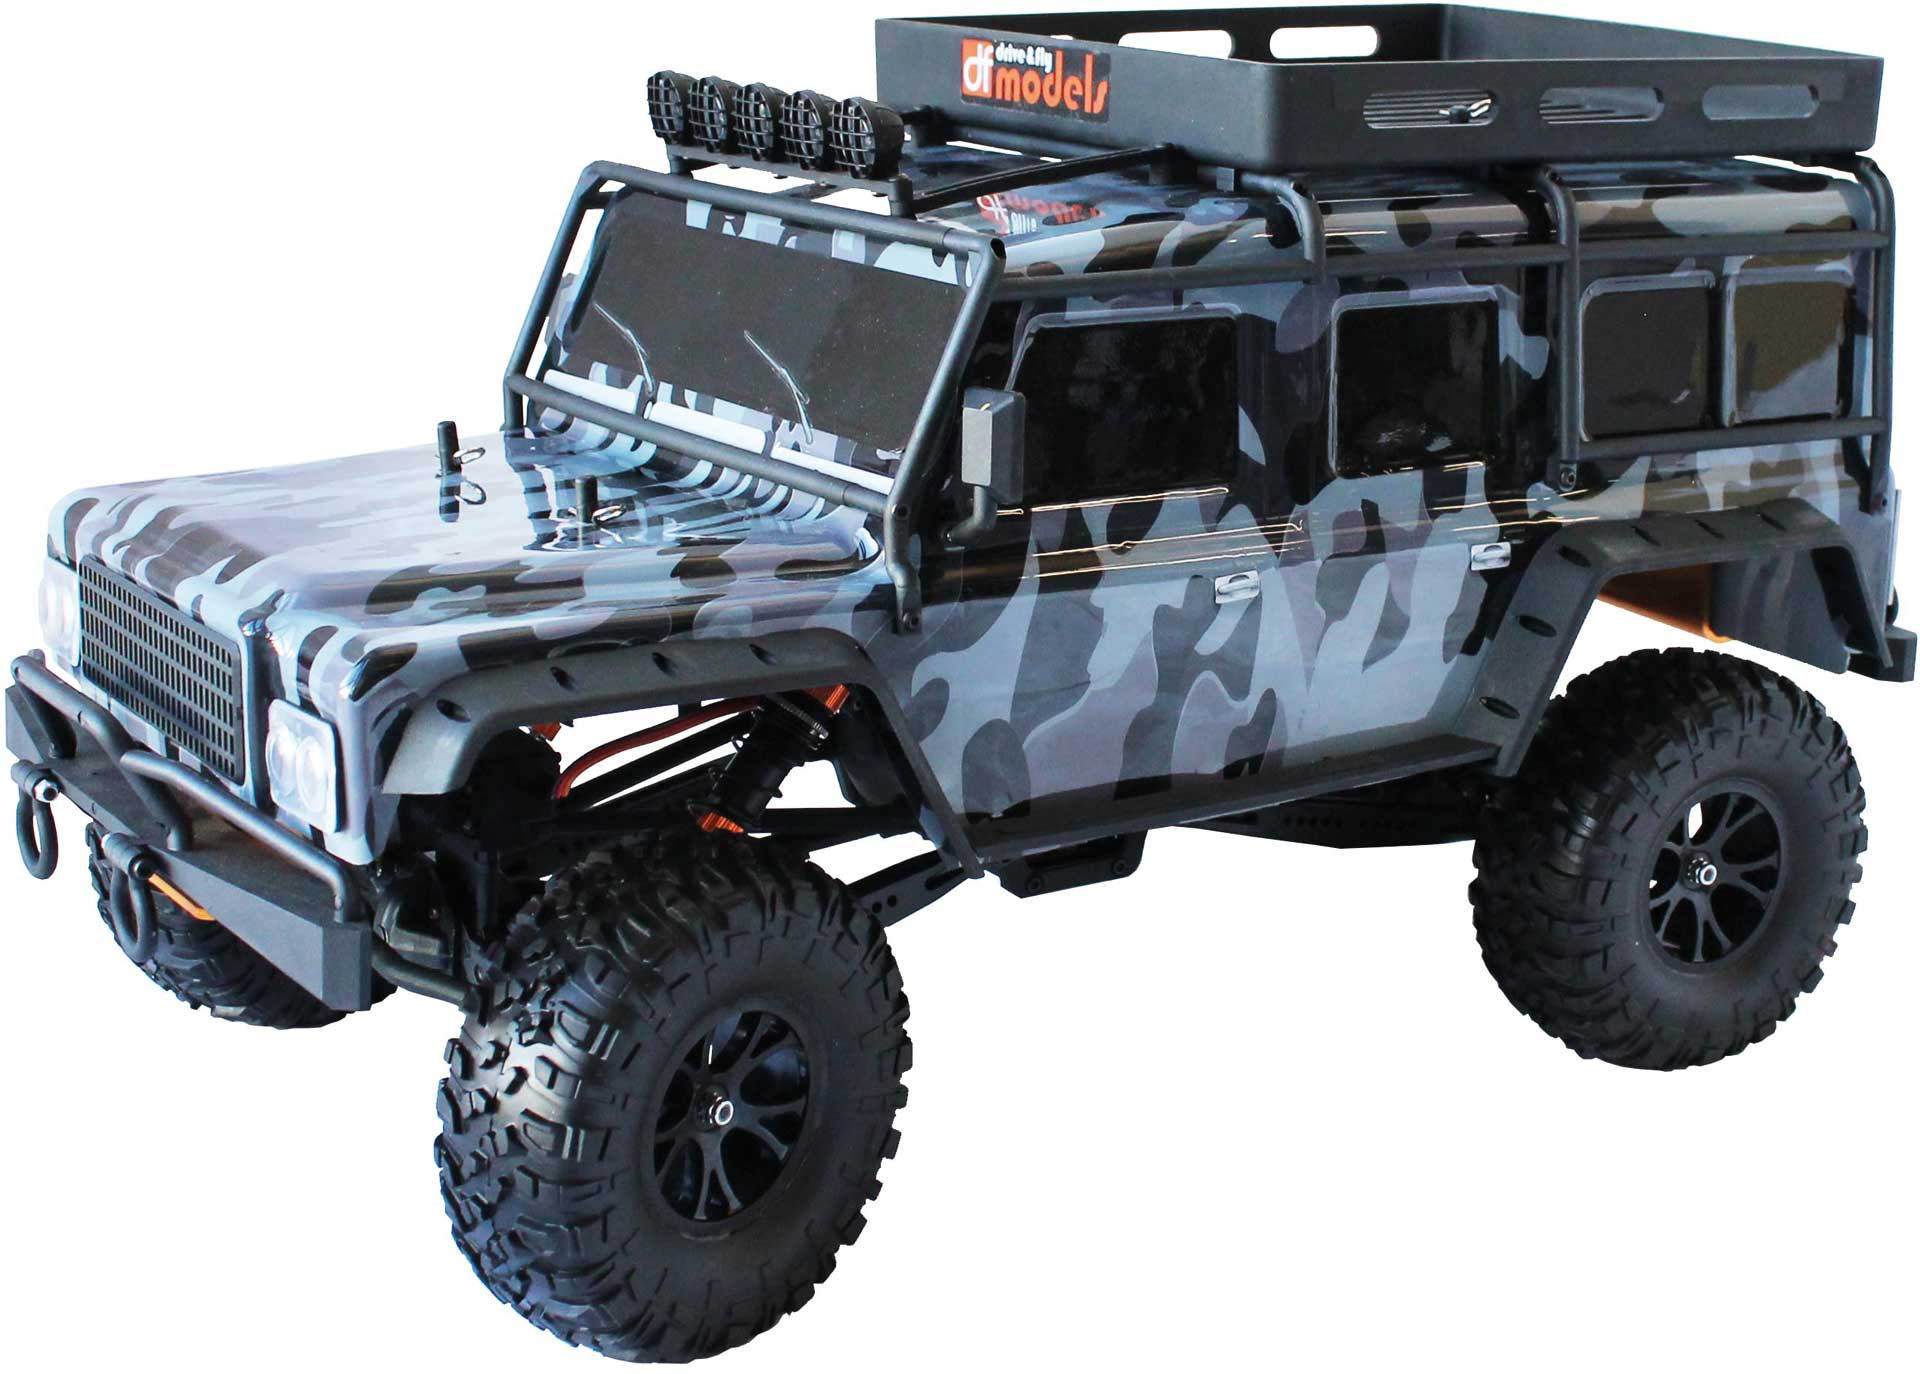 DRIVE & FLY MODELS DF-4J Crawler CAMO 2-speed LED - 2021 Edition